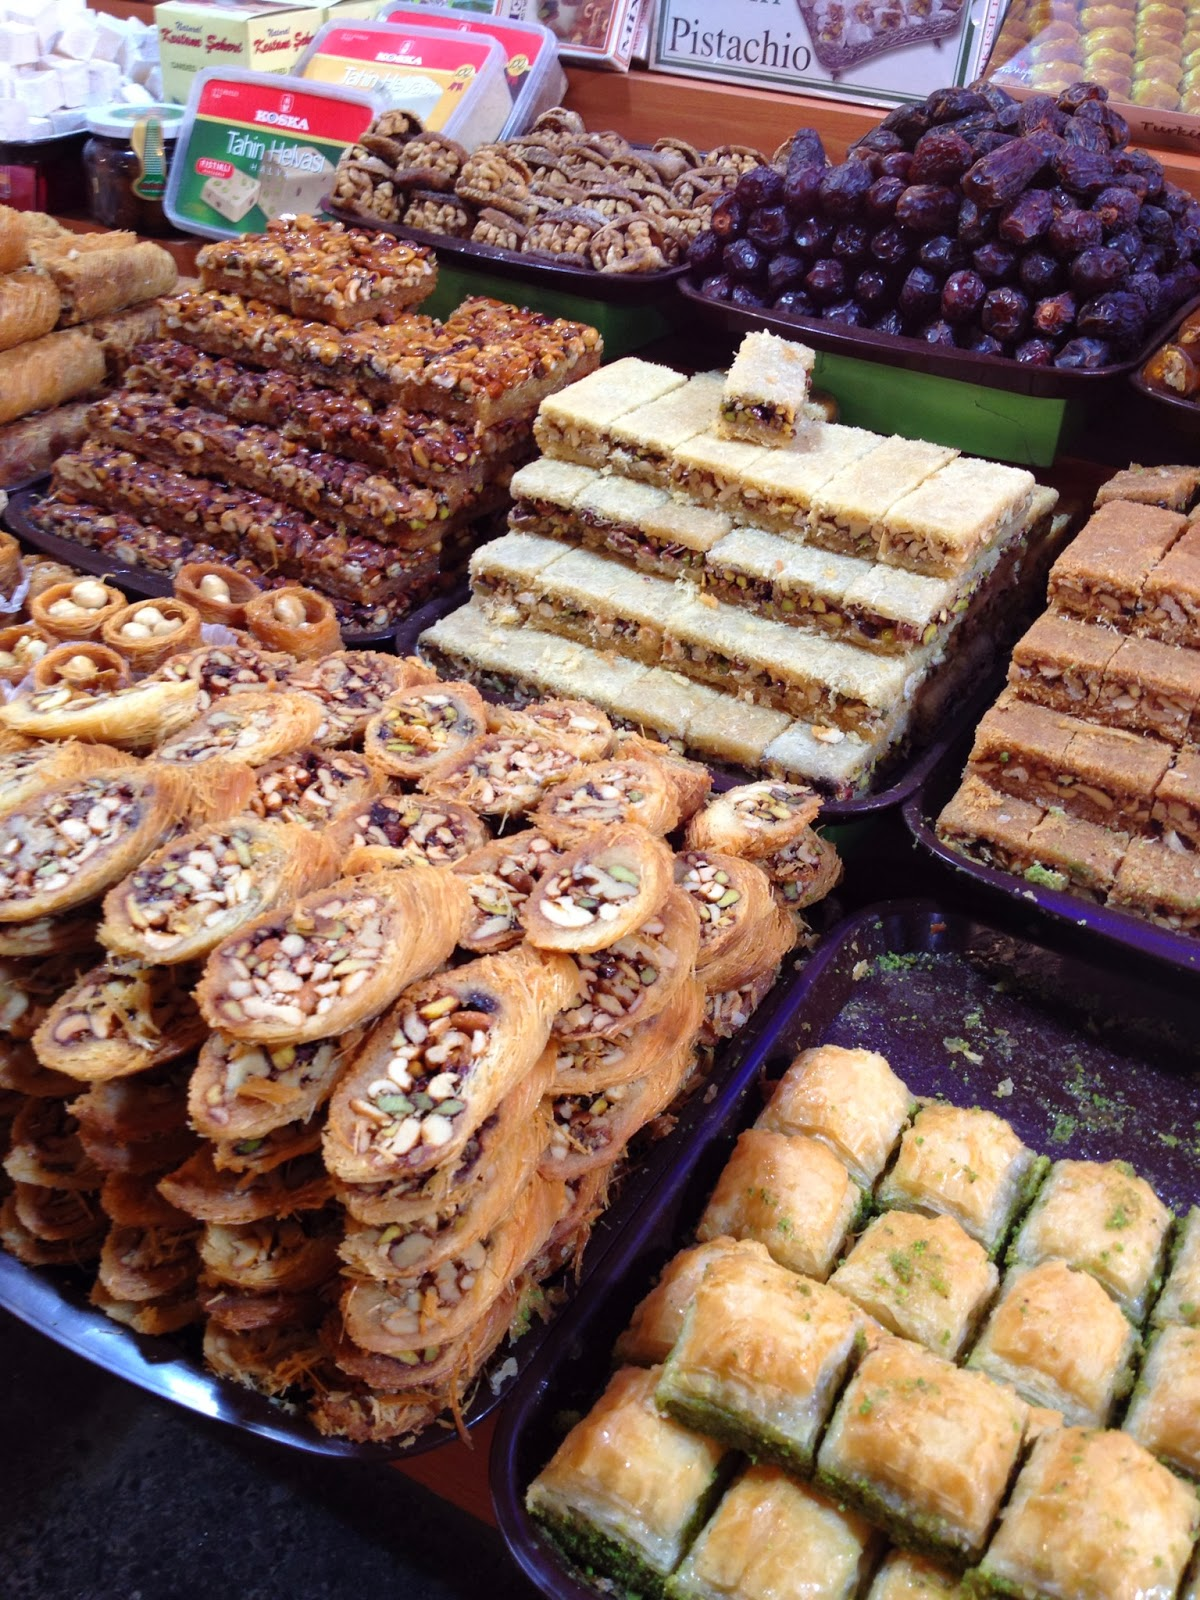 Istanbul - The Spice Bazaar is know for dried fruit, nuts, candy, and of course, spices